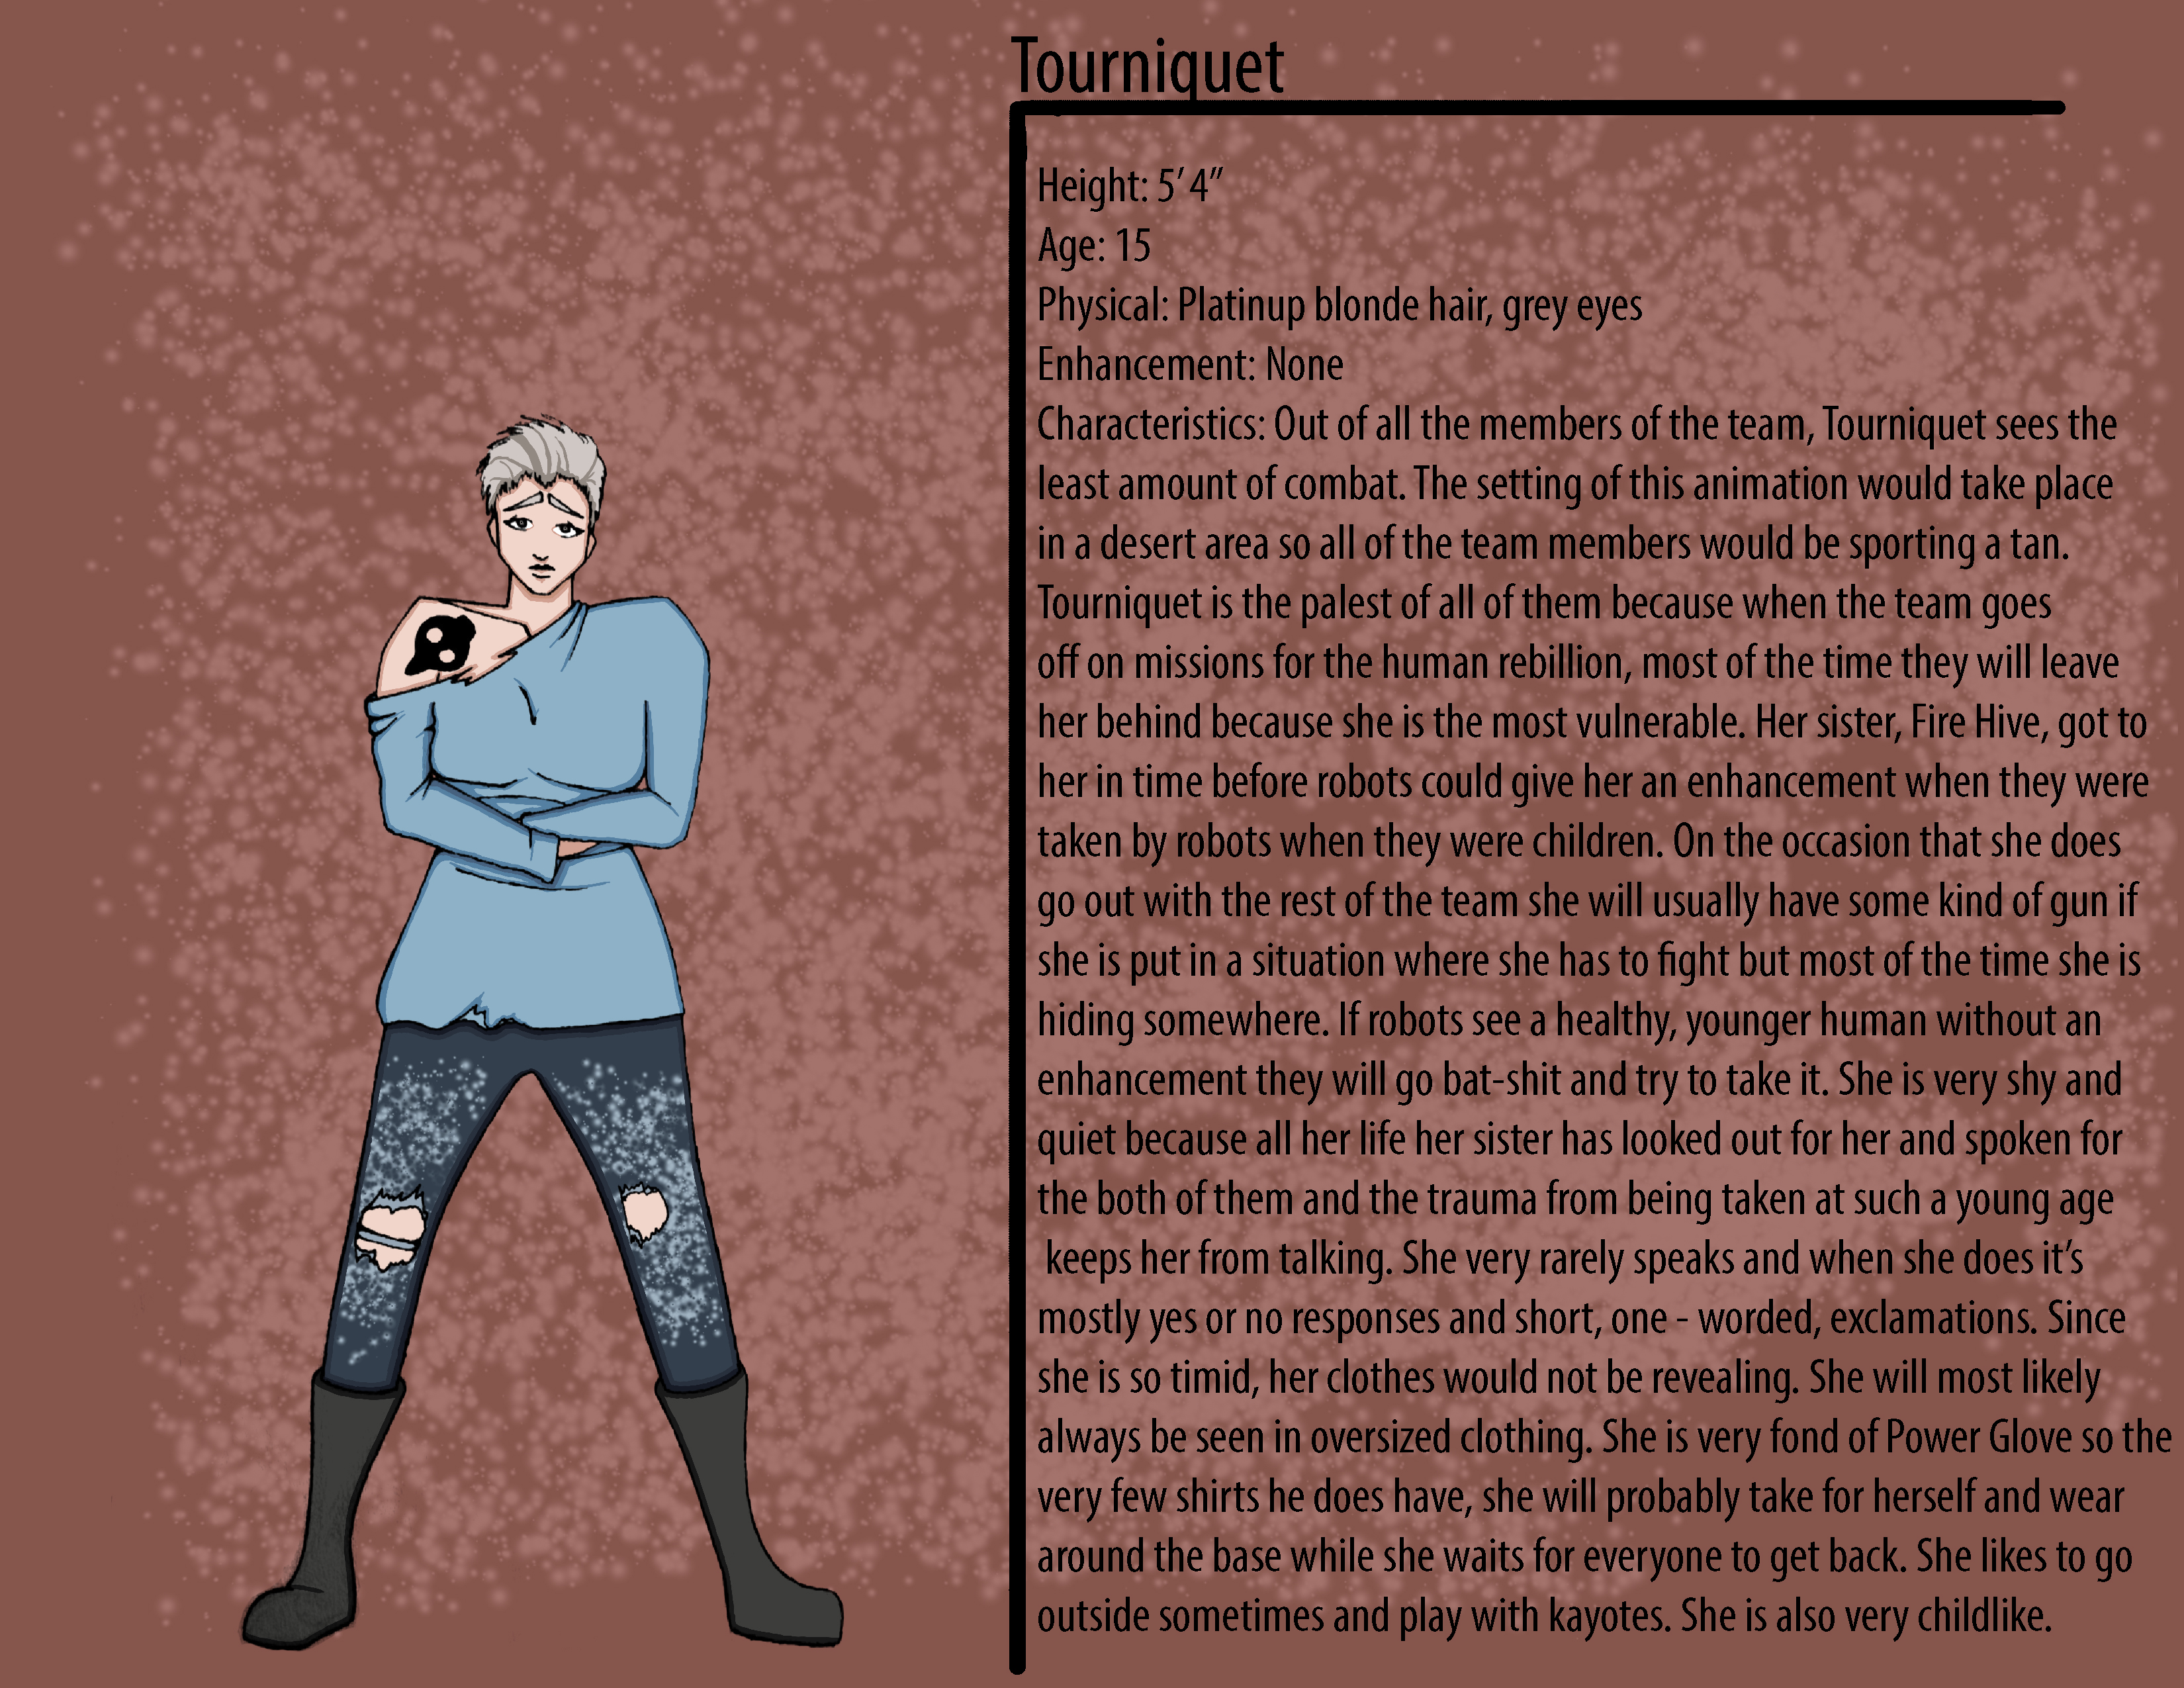 Tourniquet Character Description